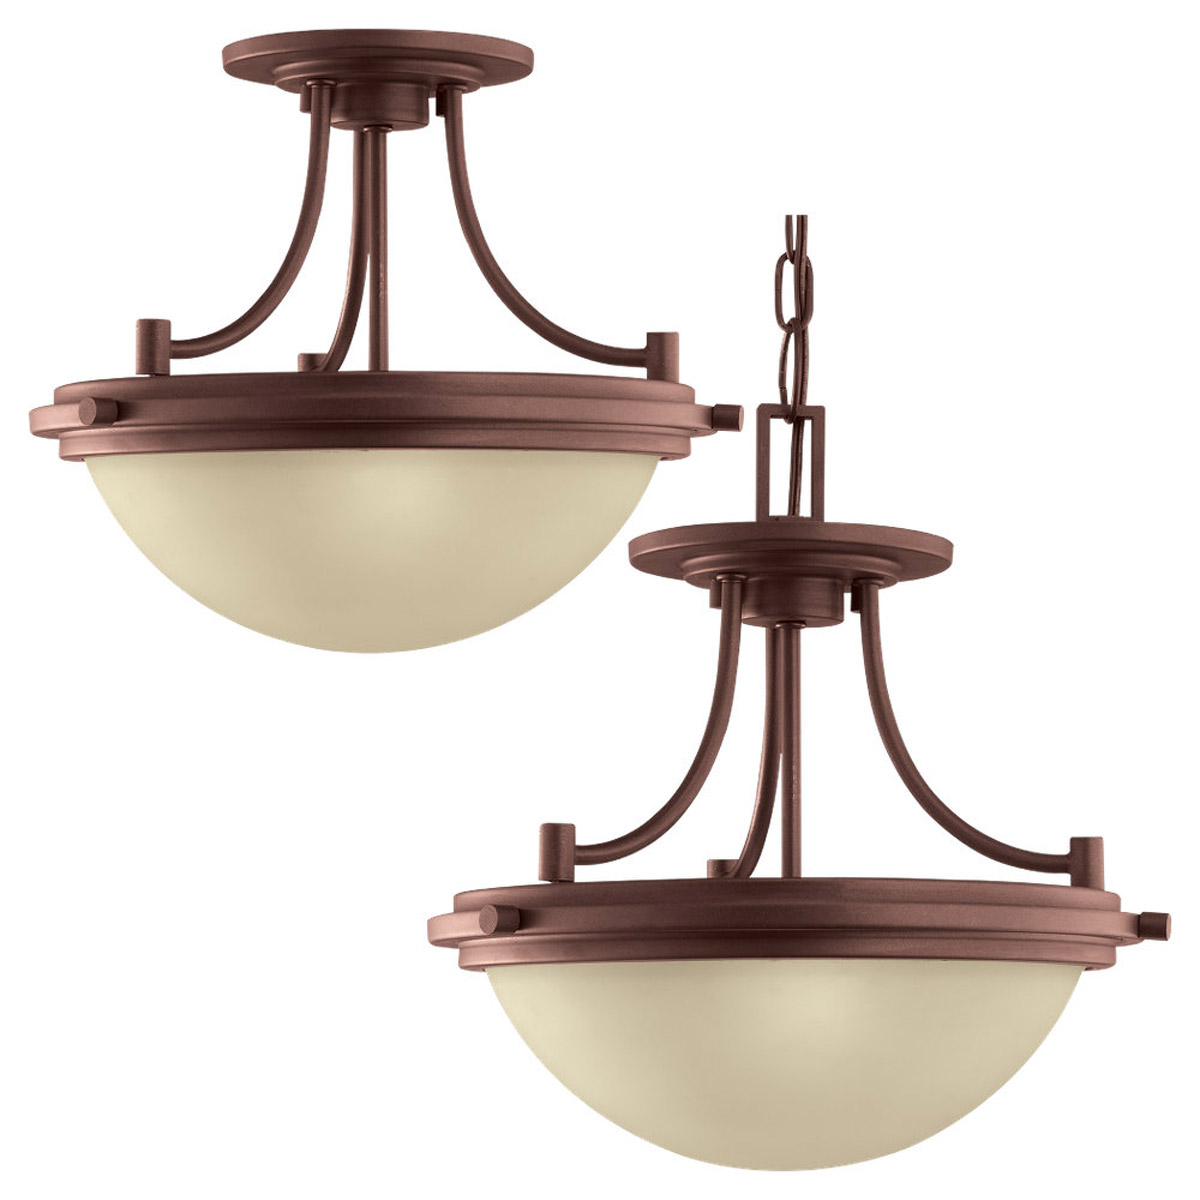 Sea Gull Lighting Winnetka 2 Light Semi-Flush Mount / Pendant in Red Earth 77660-847